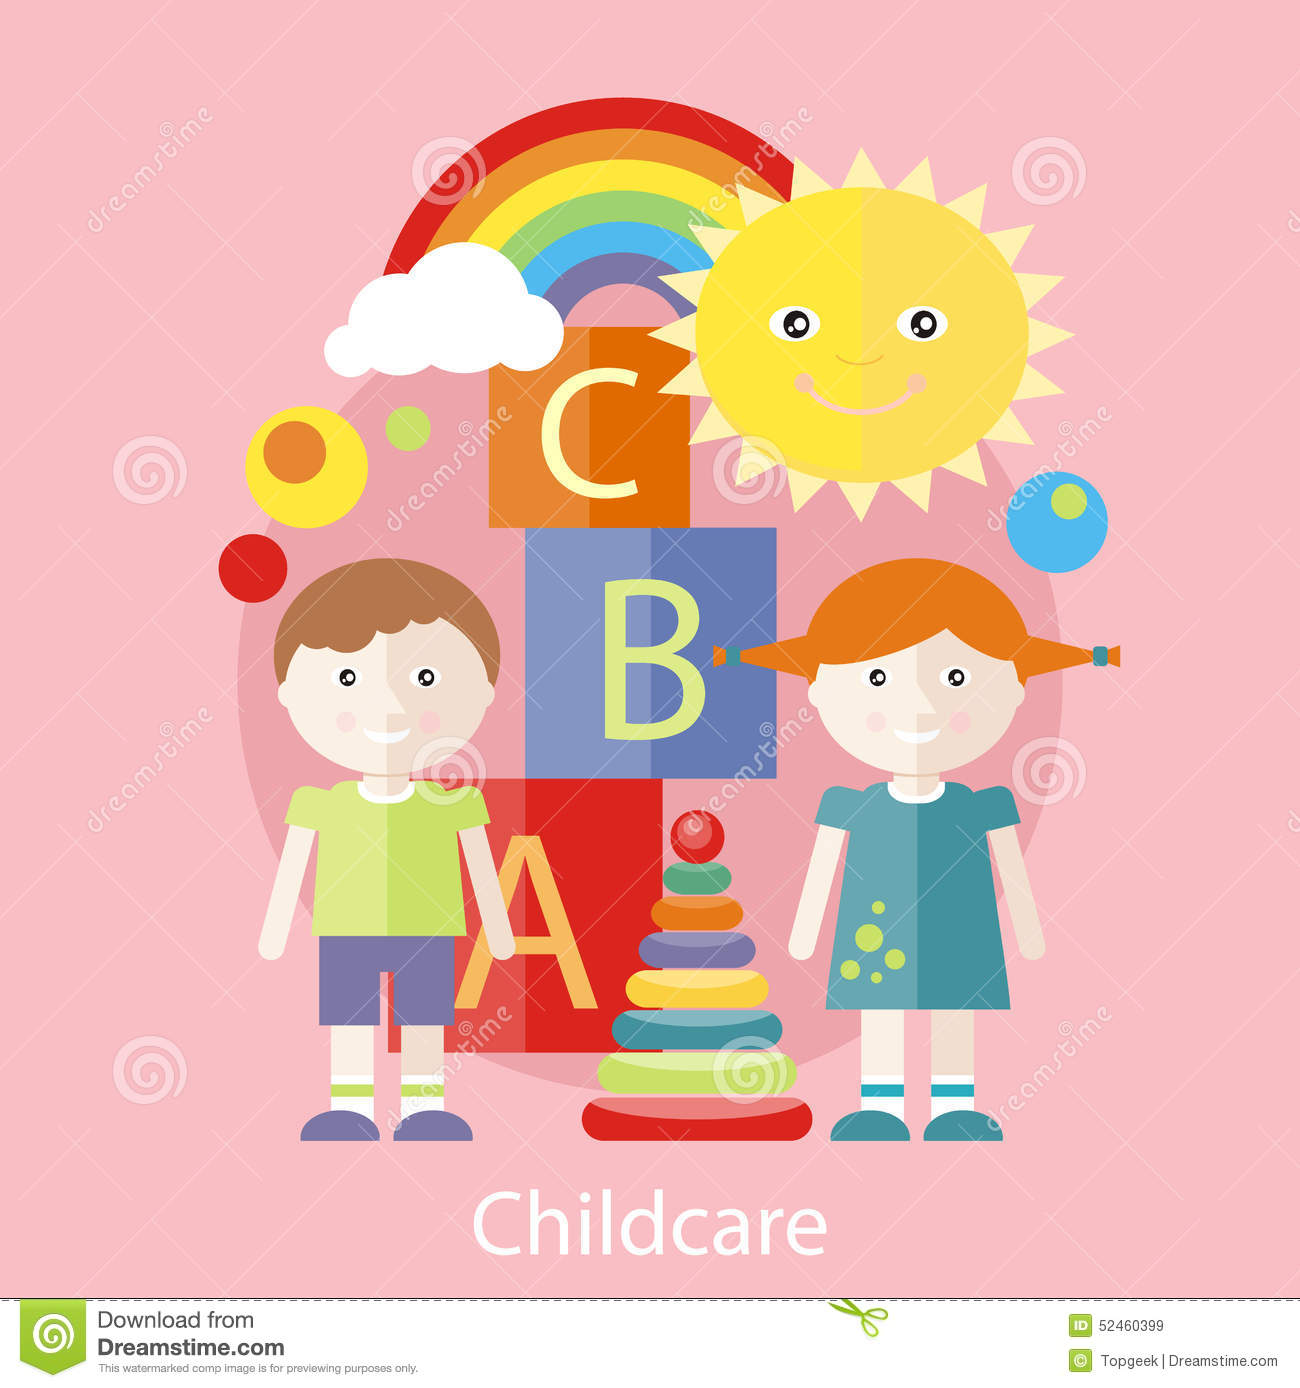 Childcare Concept Stock Vector